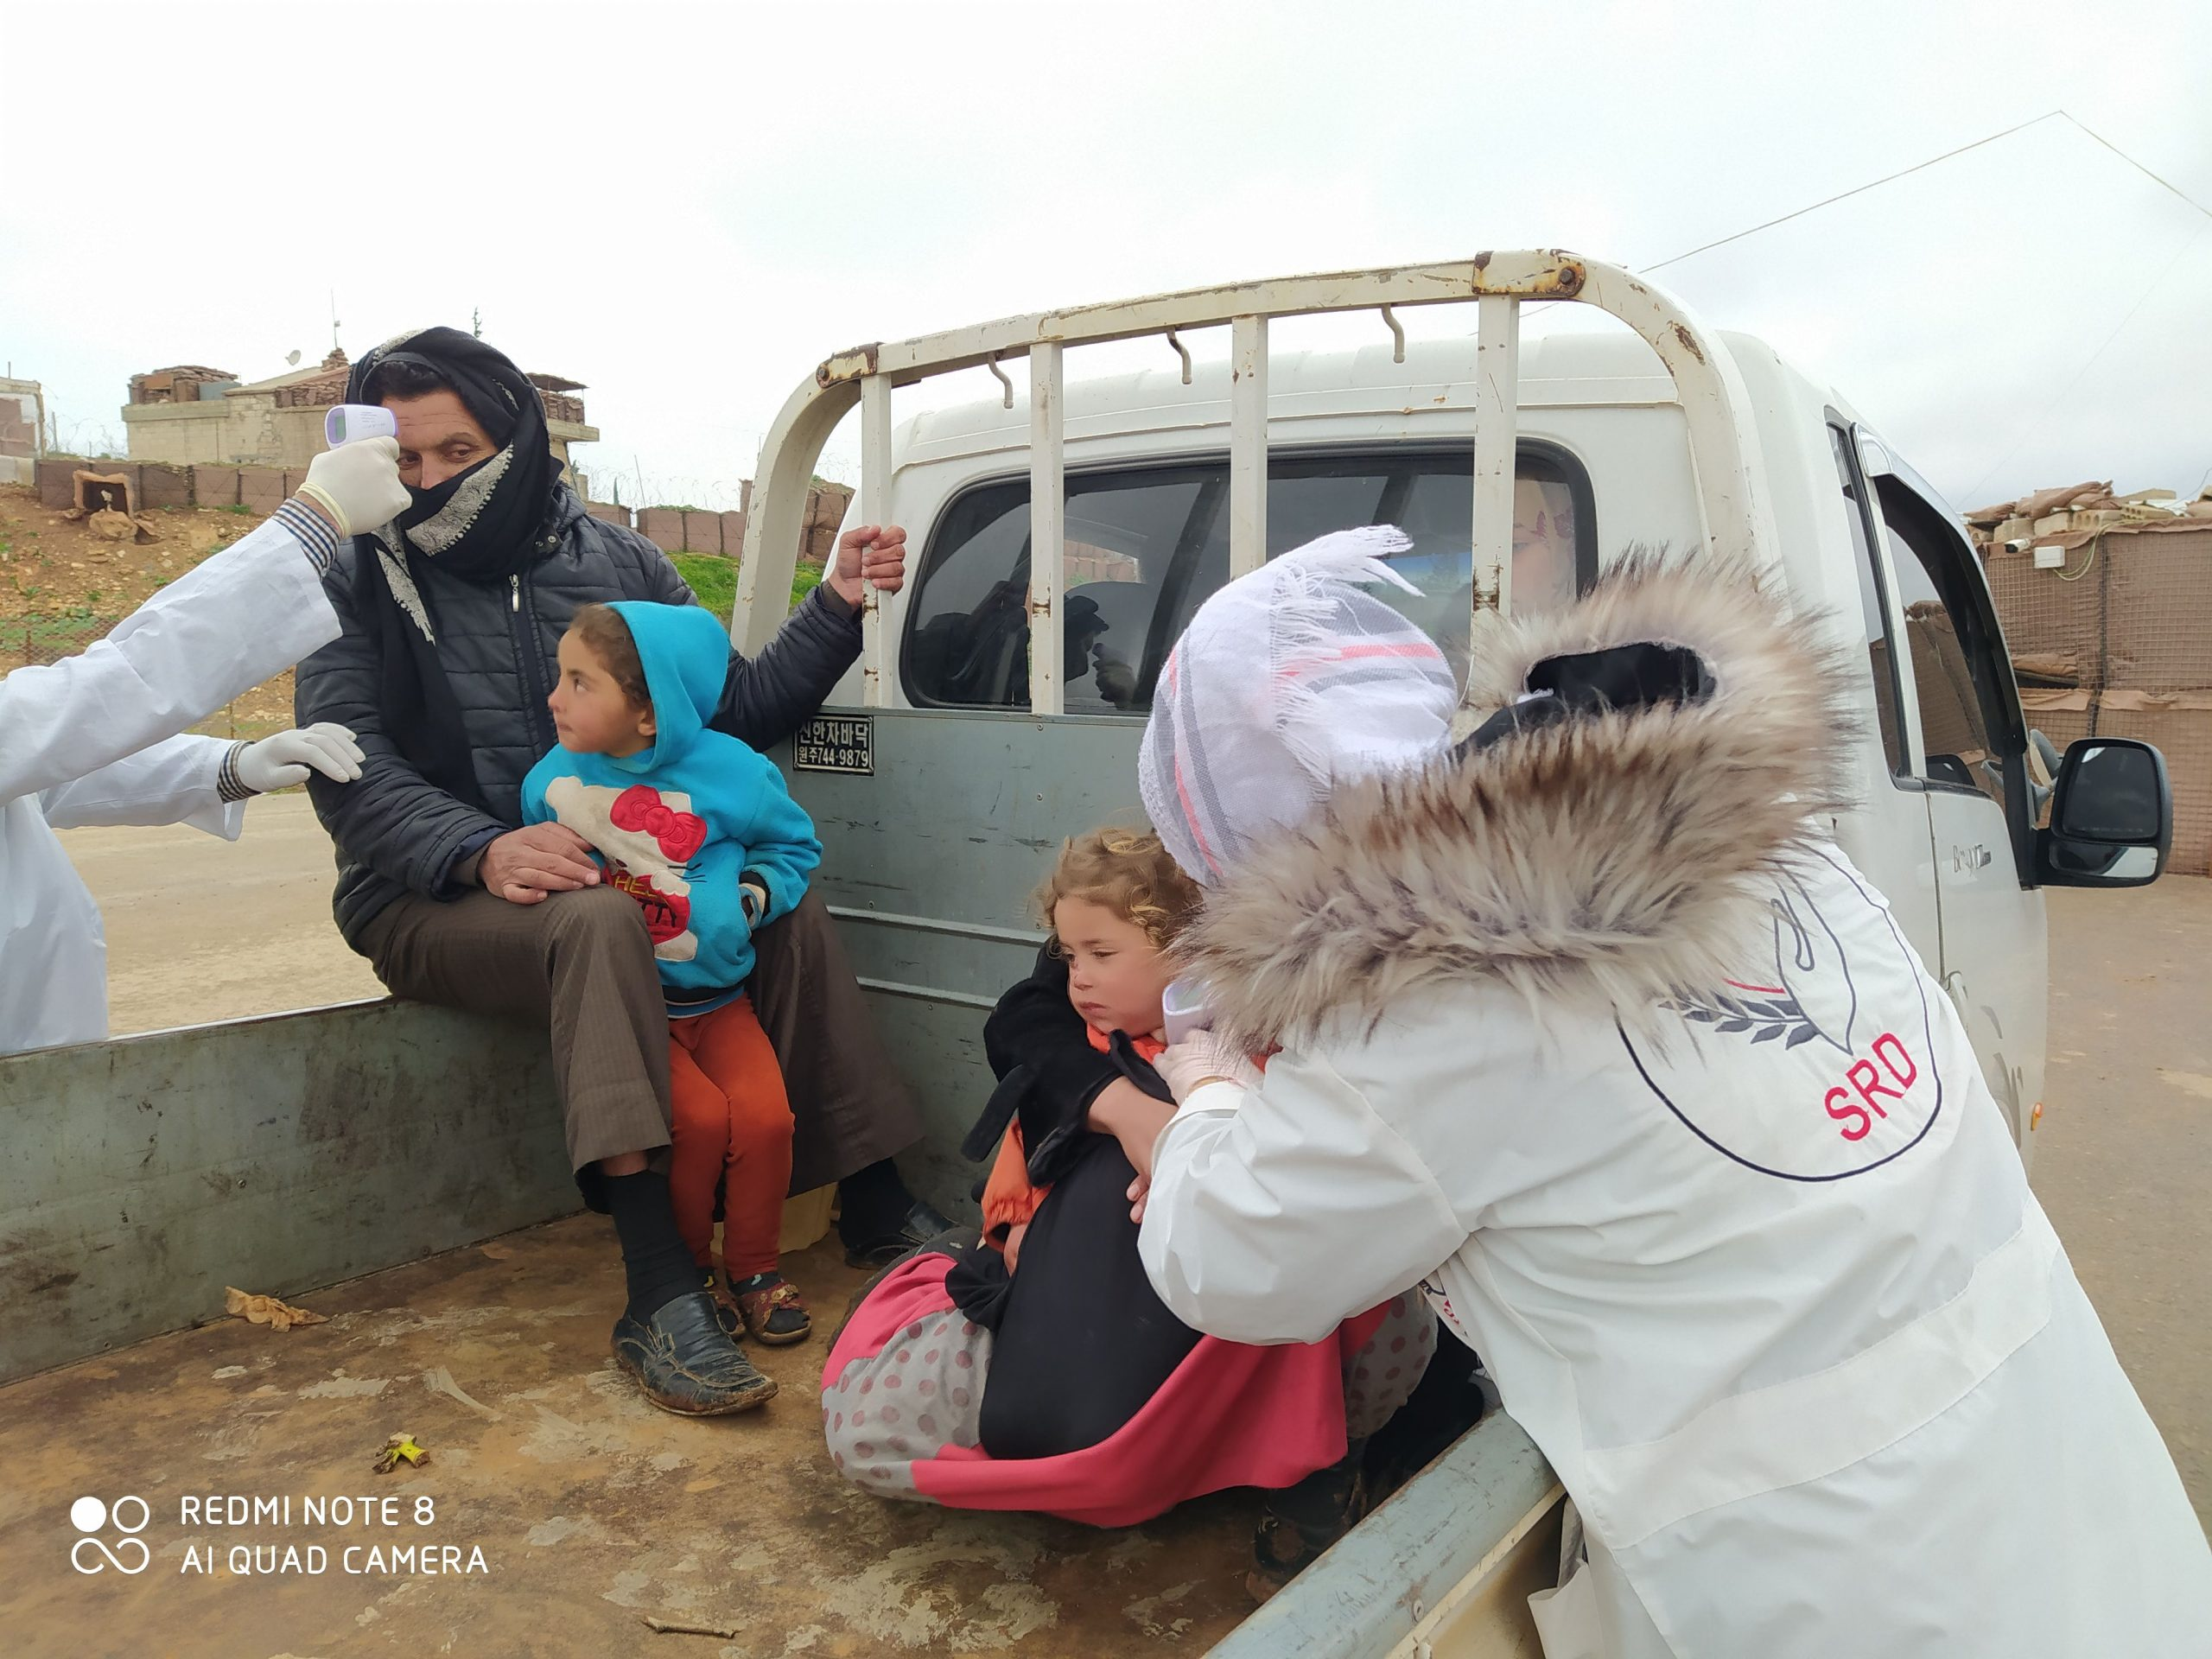 SRD's Emergency Response to the COVID-19 Crisis in Northwest Syria